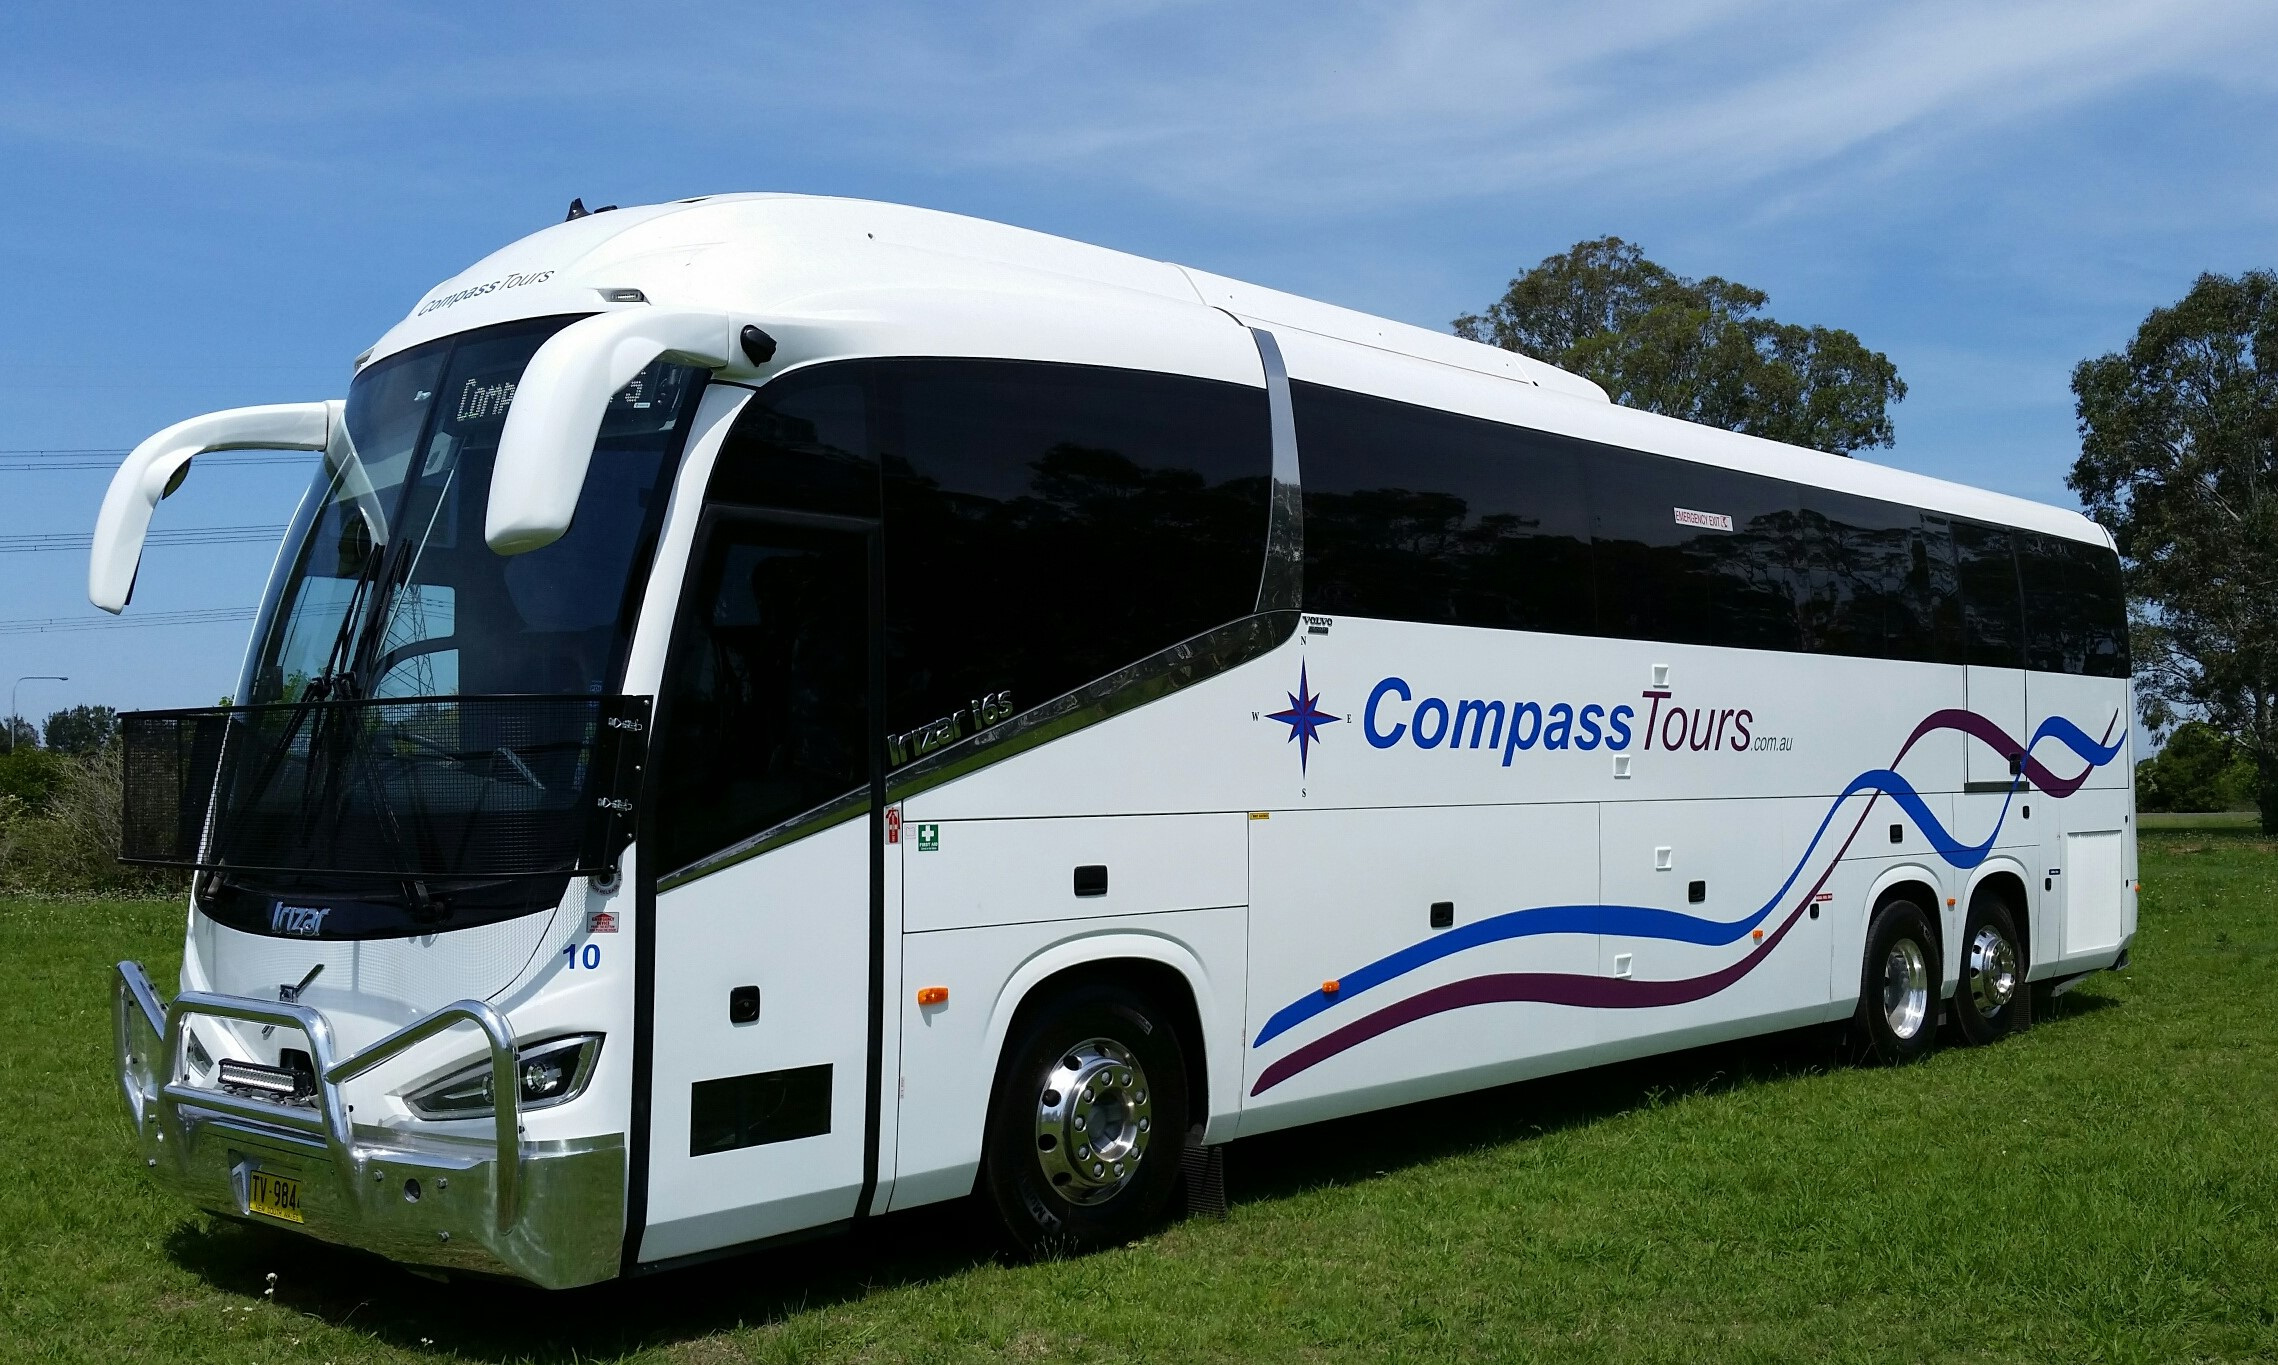 Blue Mountains Bus Company Penrith Bus Company and Compass Tours